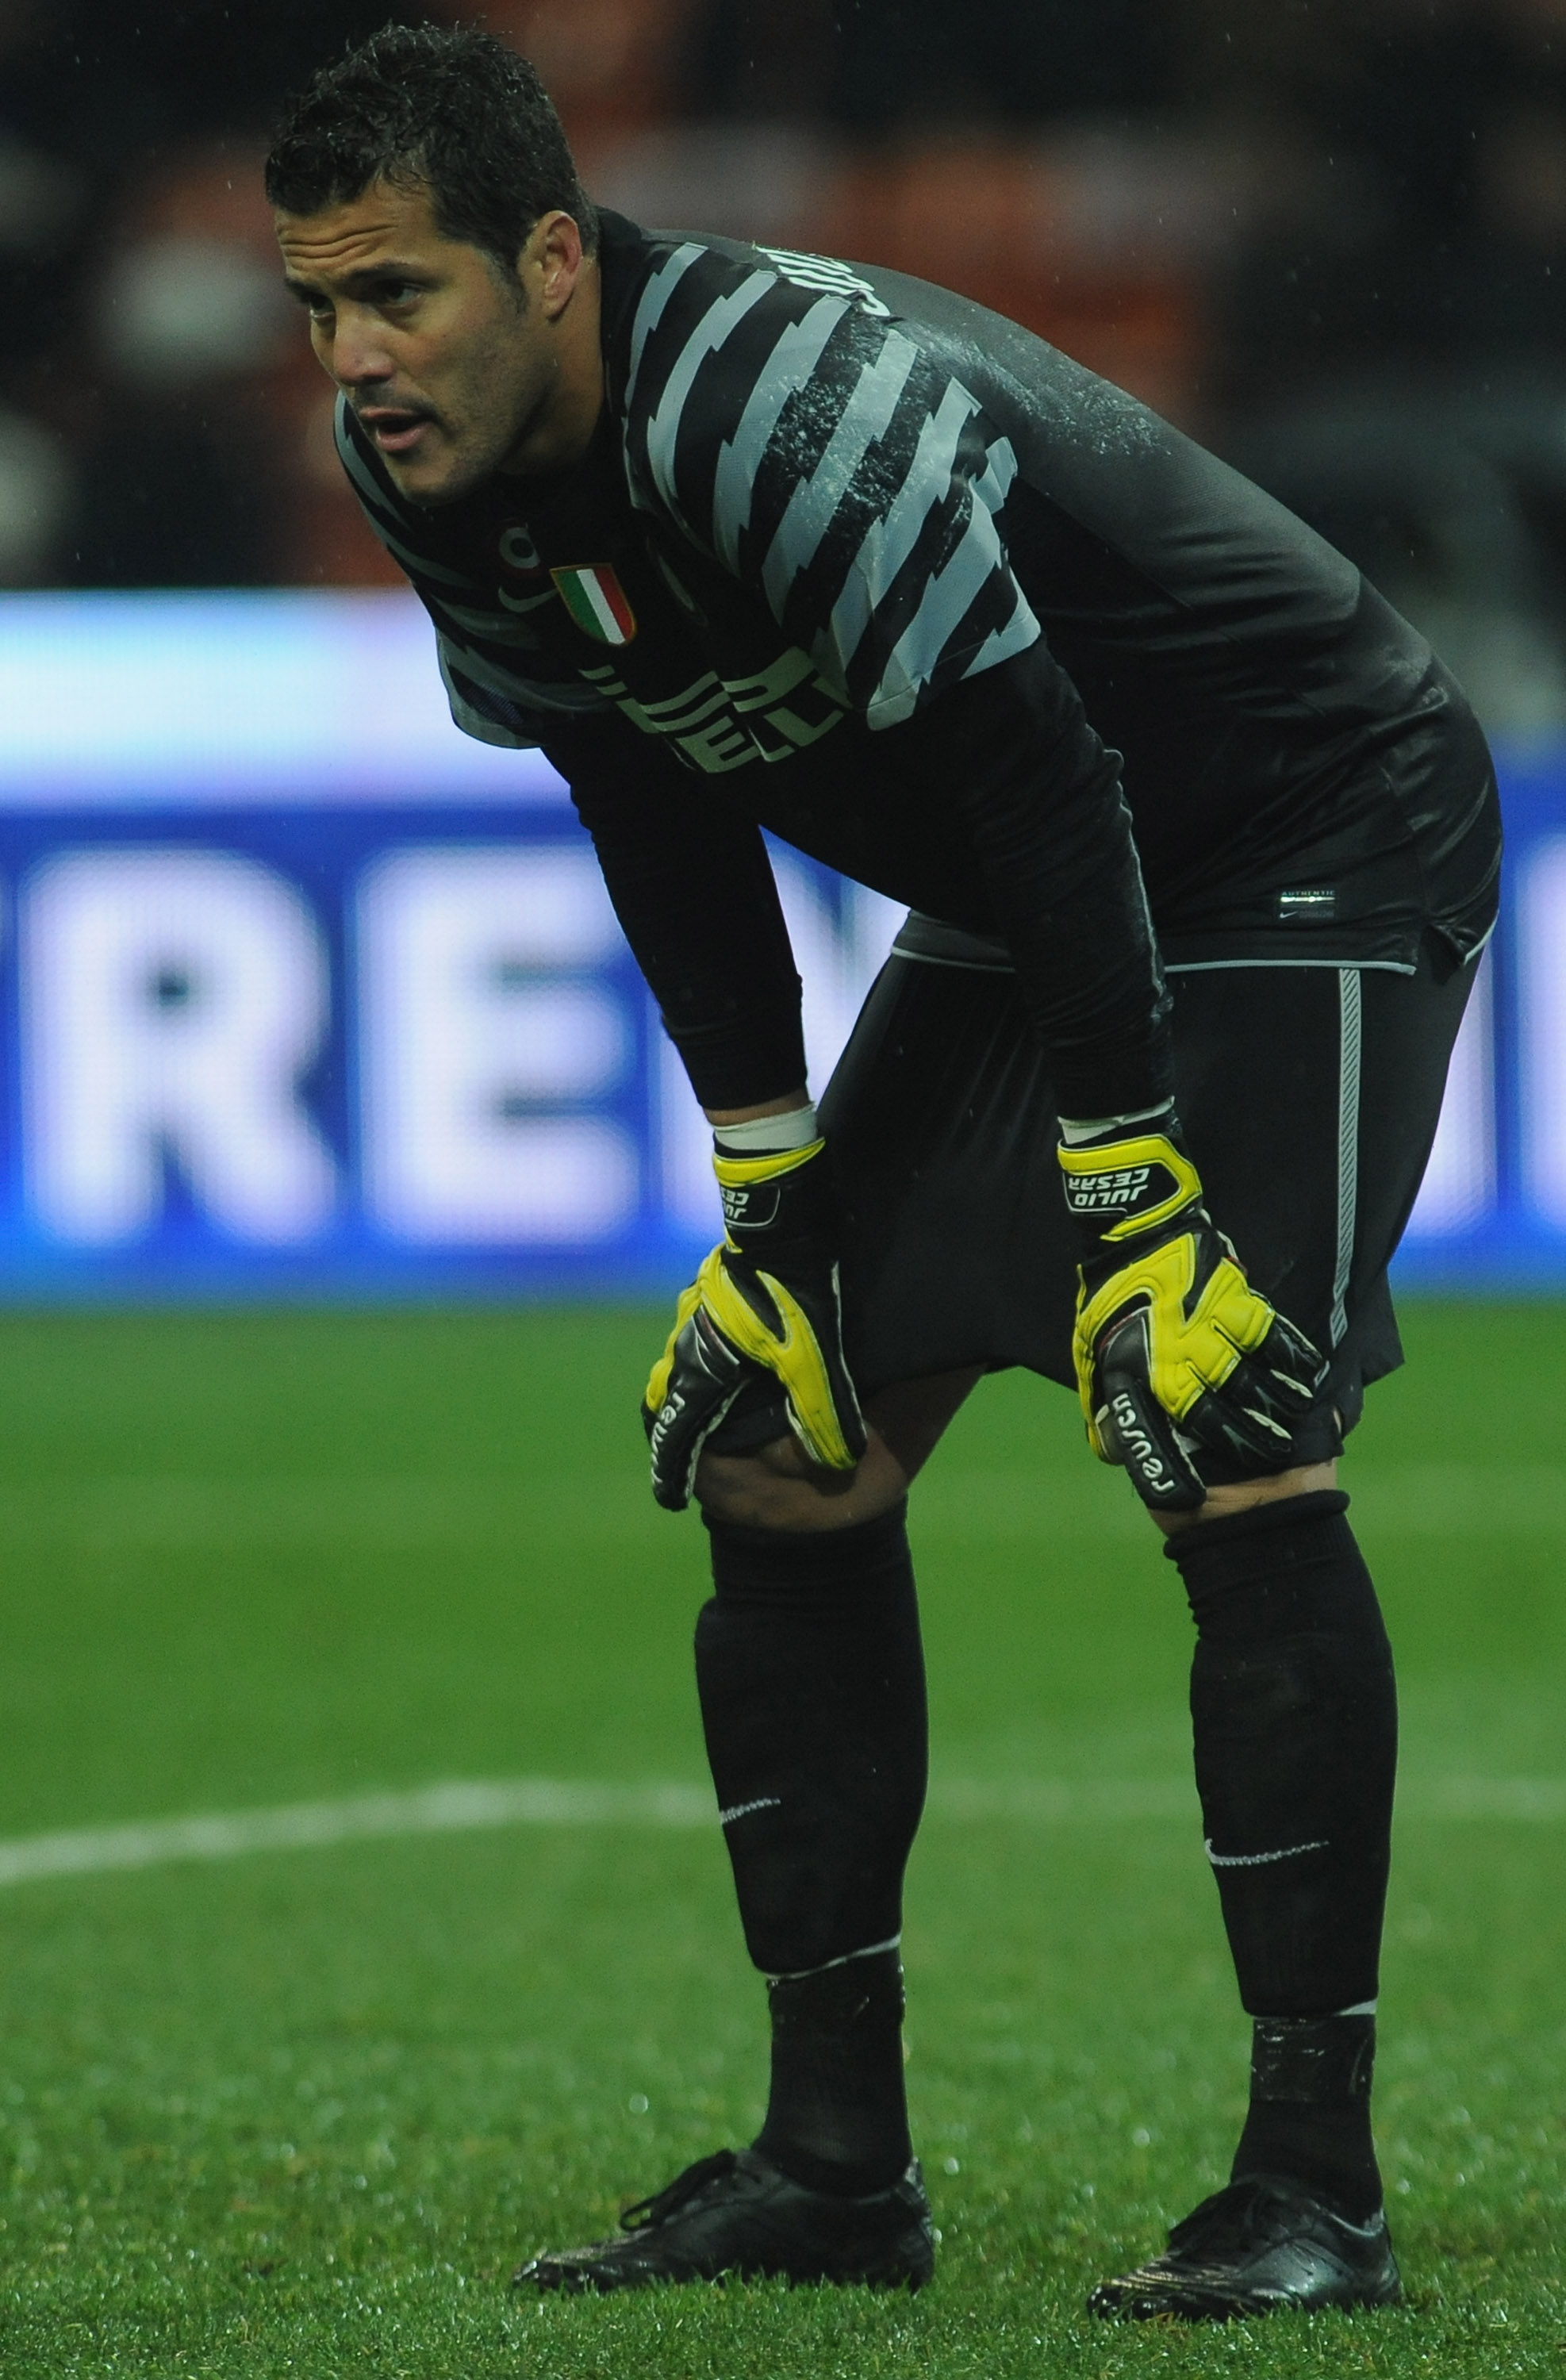 MILAN, ITALY - OCTOBER 24:  Julio Cesar of FC Internazionale Milano looks dejected during the Serie A match between FC Internazionale Milano and UC Sampdoria at Stadio Giuseppe Meazza on October 24, 2010 in Milan, Italy.  (Photo by Valerio Pennicino/Getty